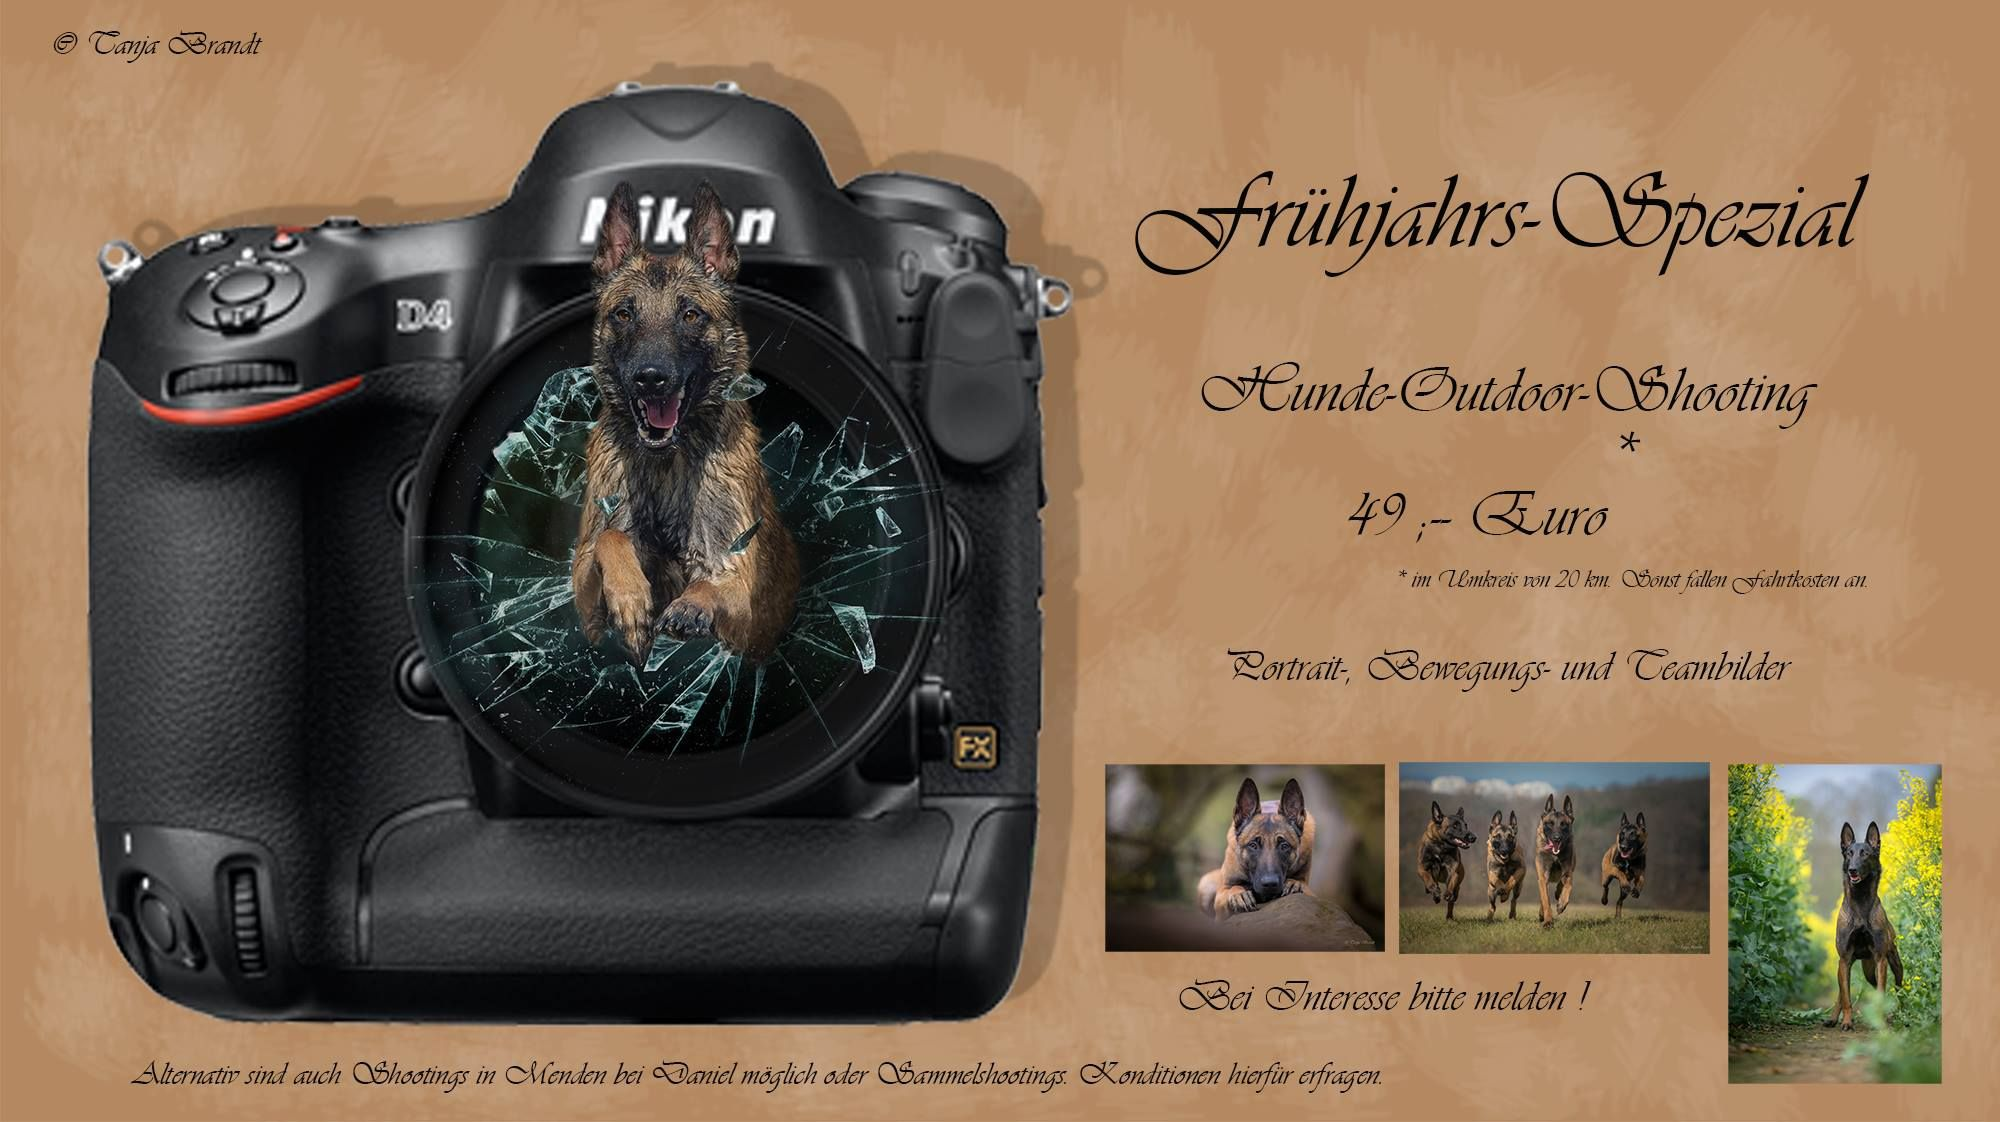 check out her facebook page for amazing pictures of malinois and other dogs and wildlife shots. She does amazing work!